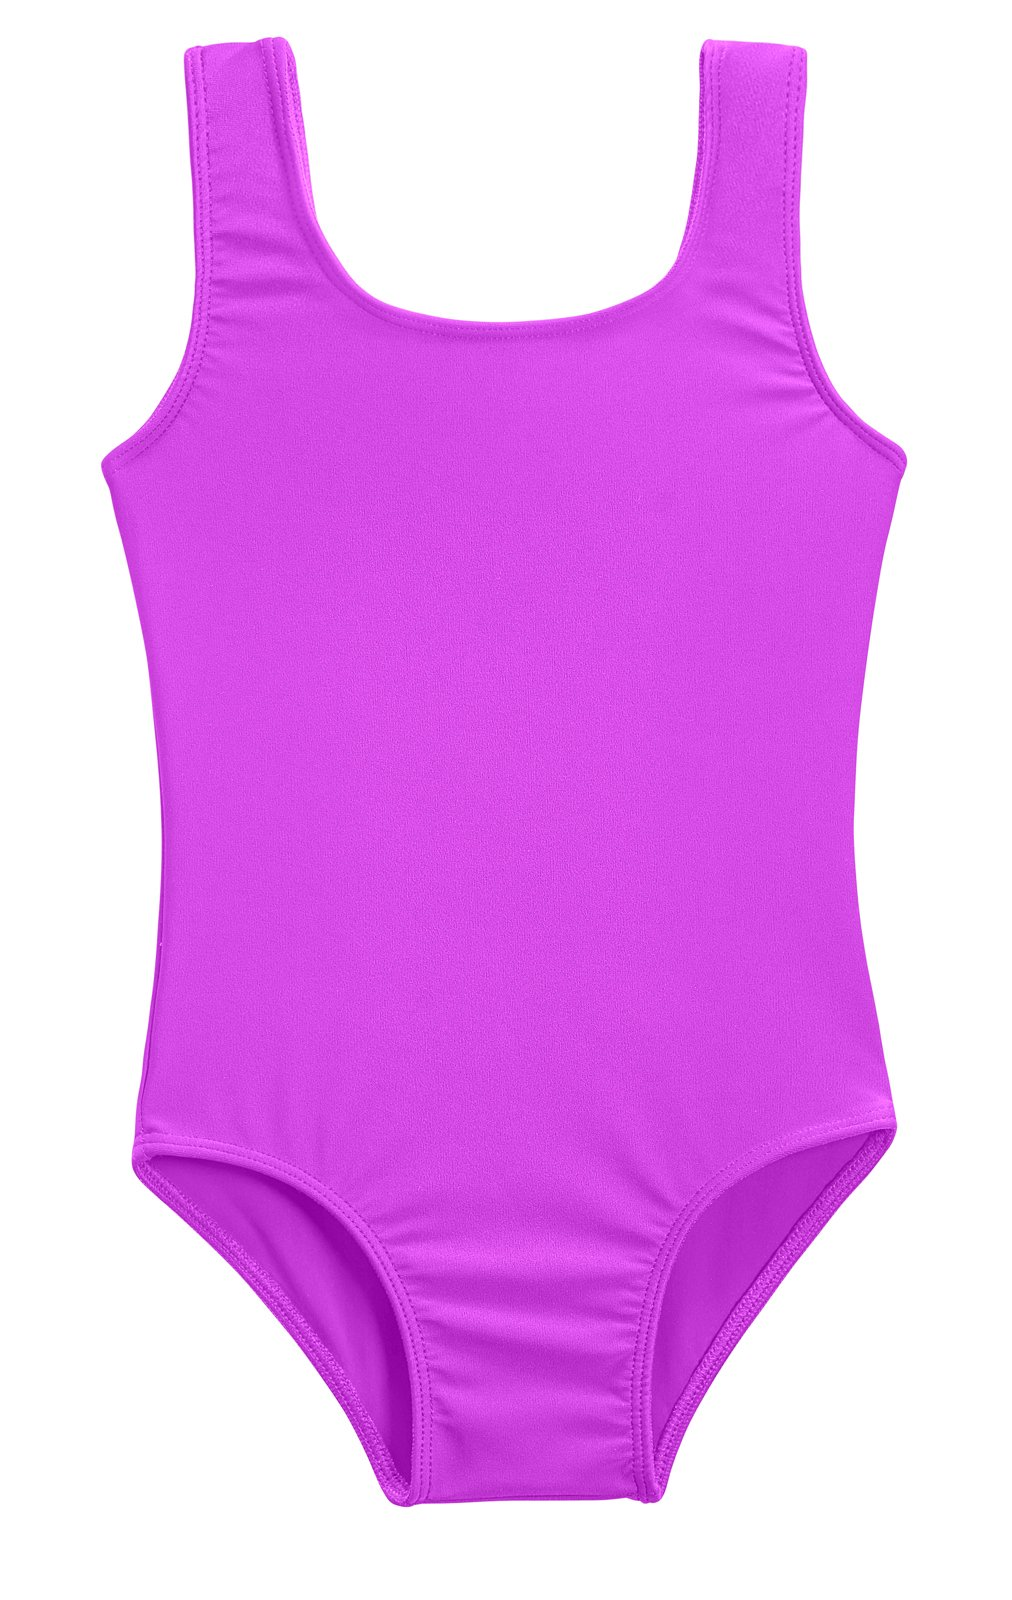 City Threads Girls' One Piece Swimming Suit with Sun Protection SPF for Beach Pool Or Play Swim Suit Rash Guard Bottoms Briefs, Deep Purple, 2T